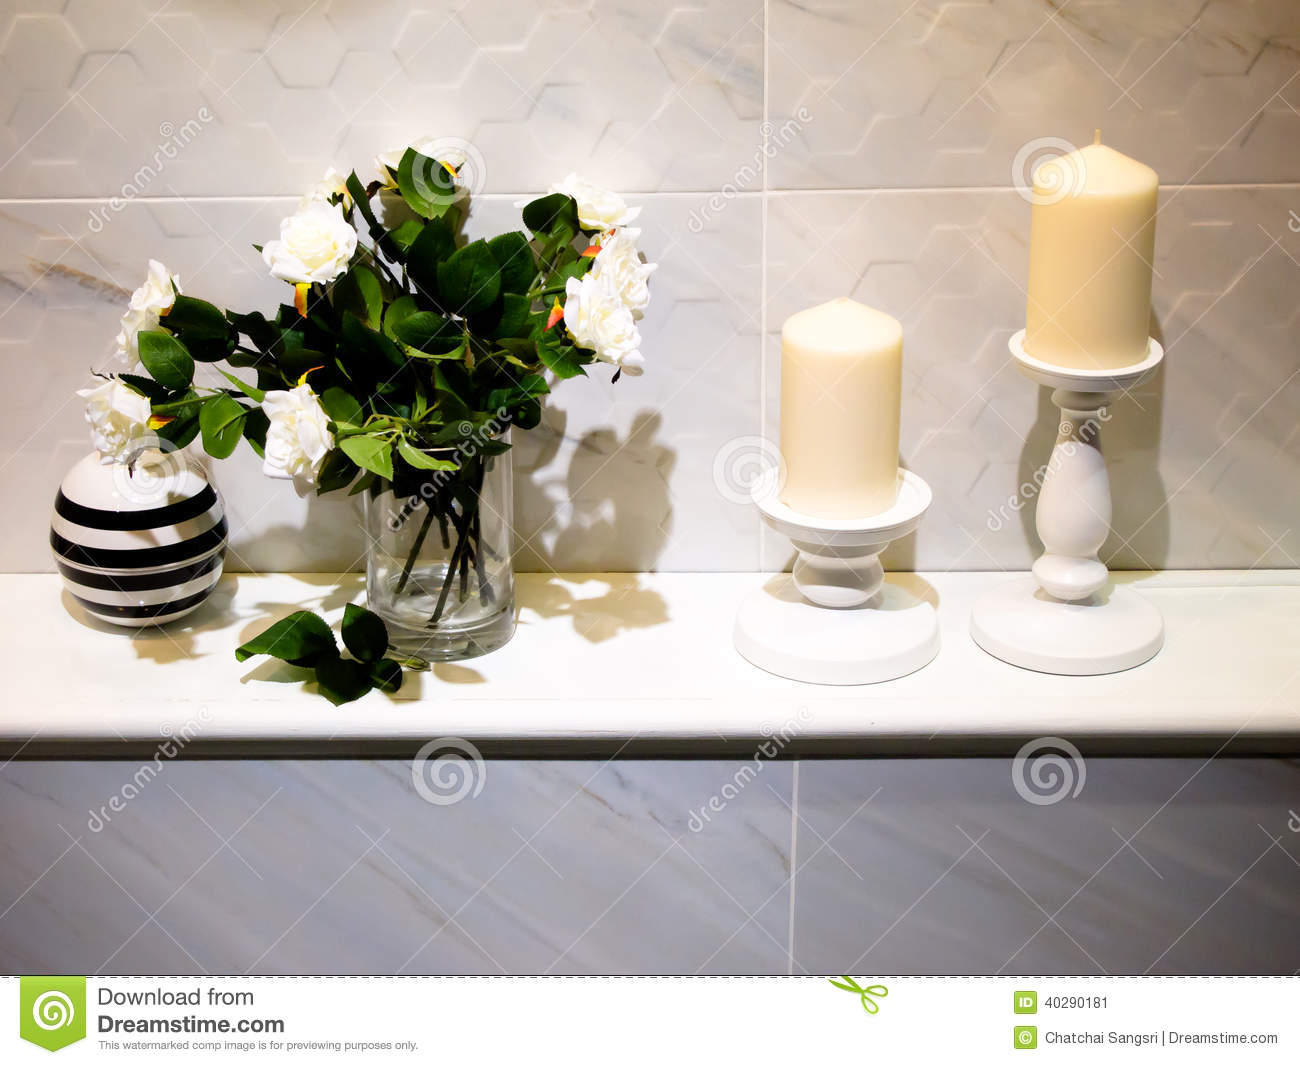 Bathroom Decor Stock Image Image Of Candle Massage